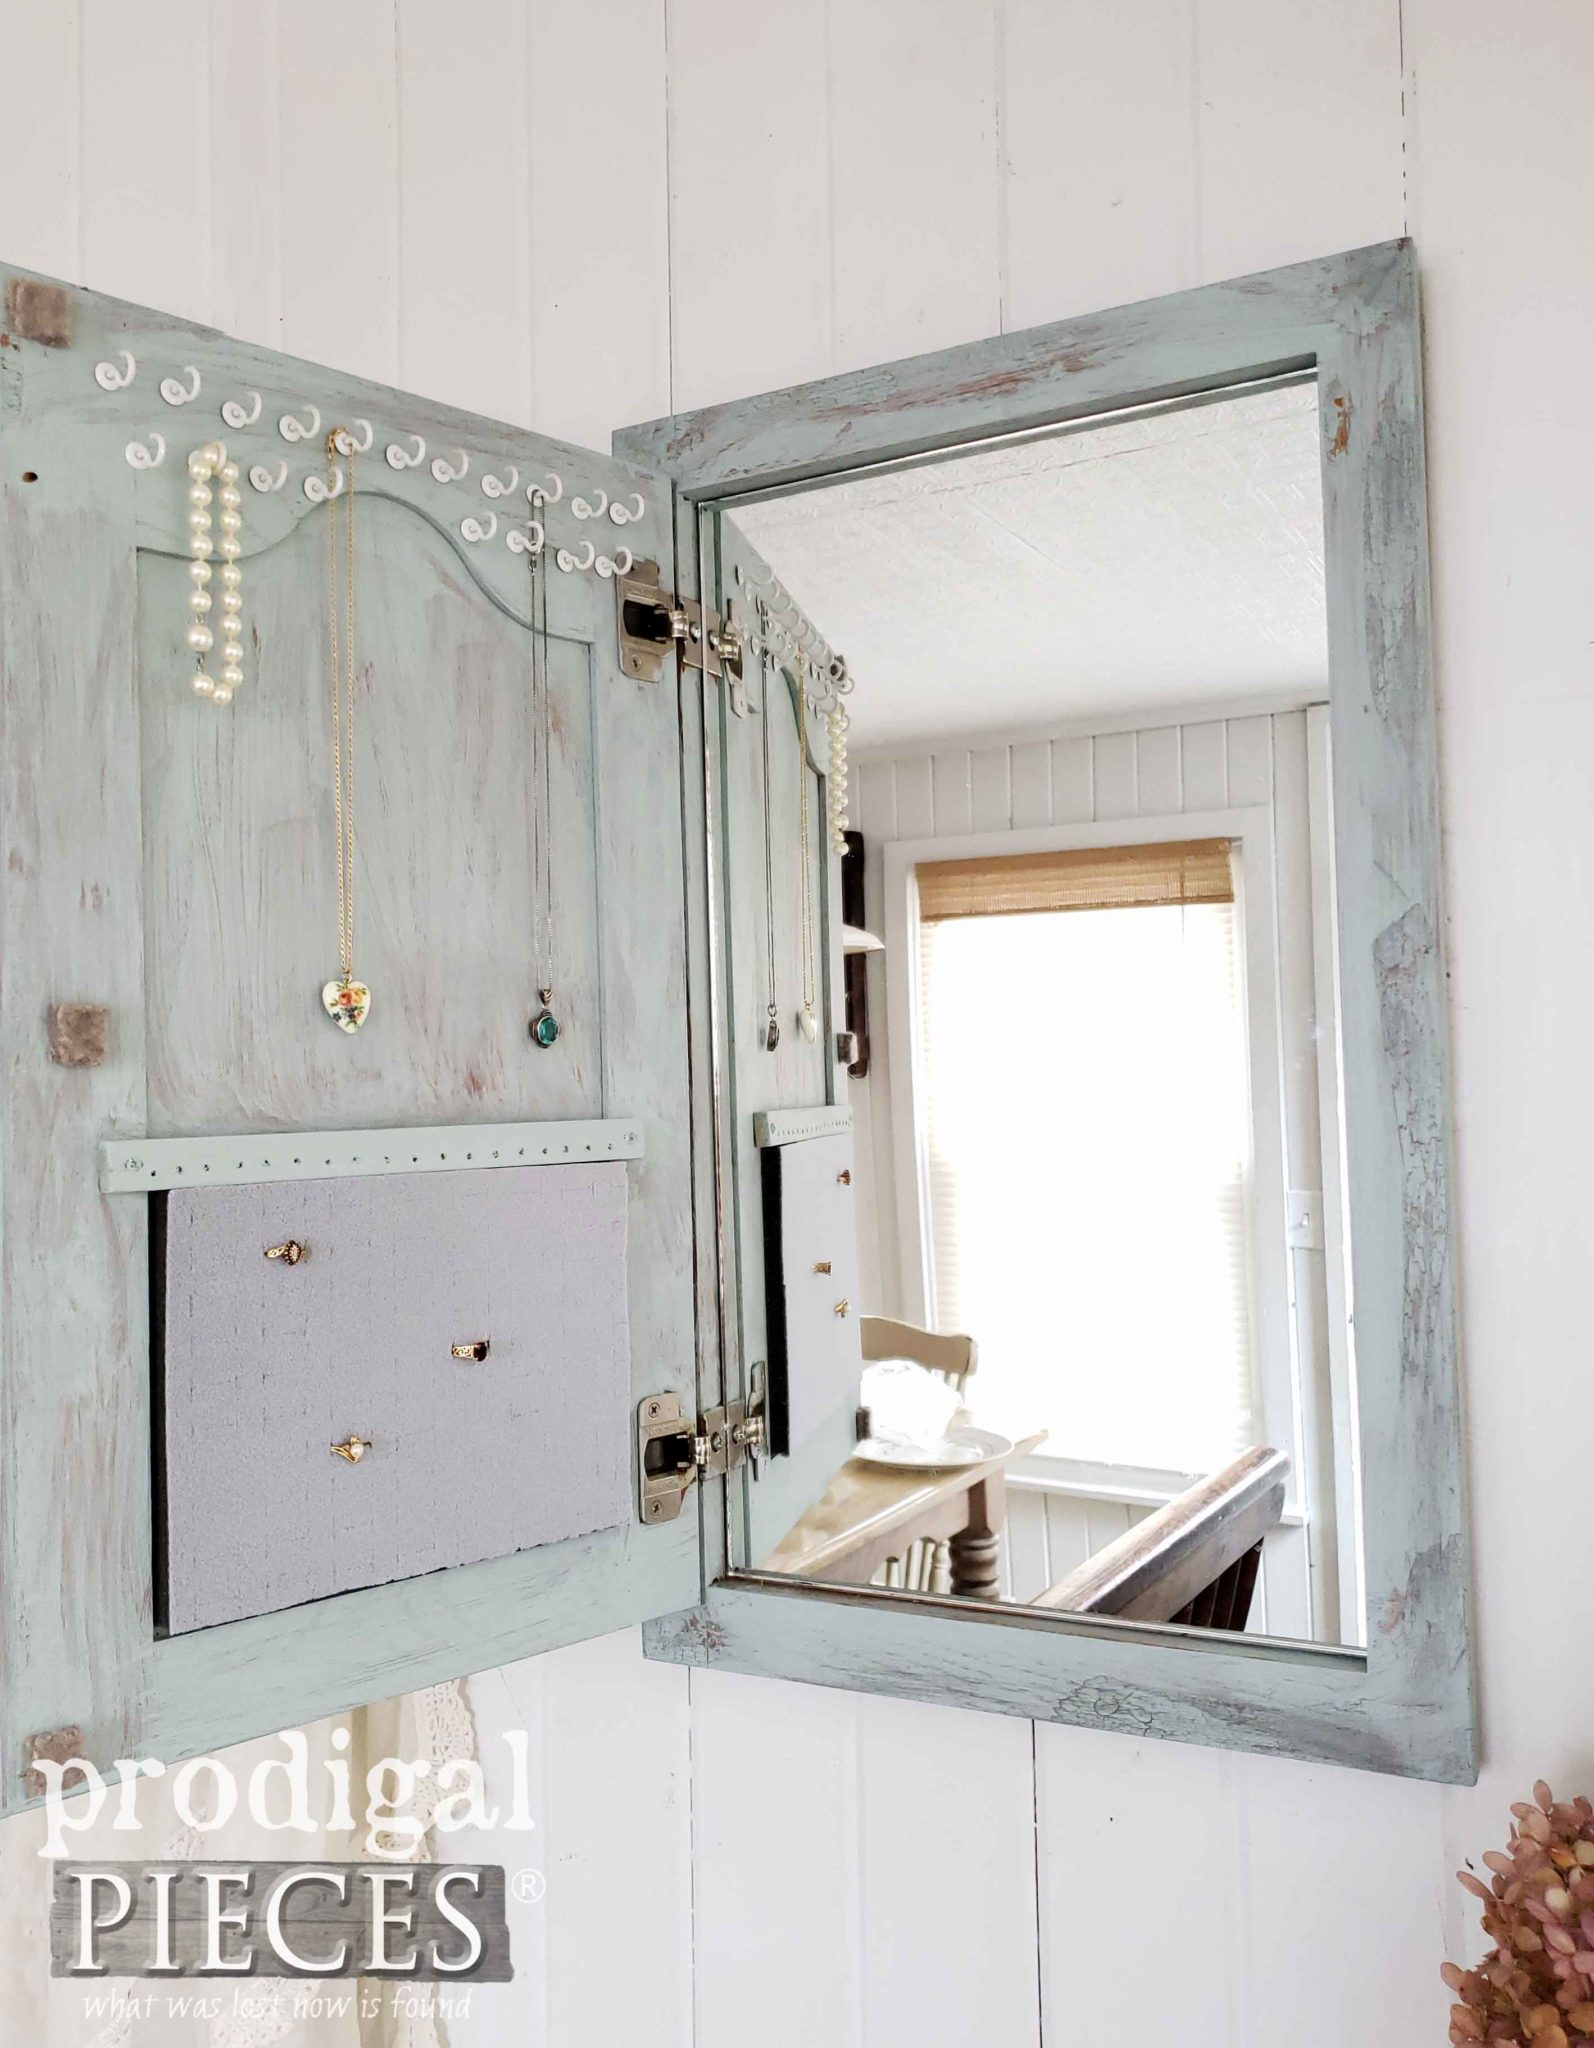 Inside Cottage Shabby Chic Jewelry Organizer by Prodigal Pieces | prodigalpieces.com